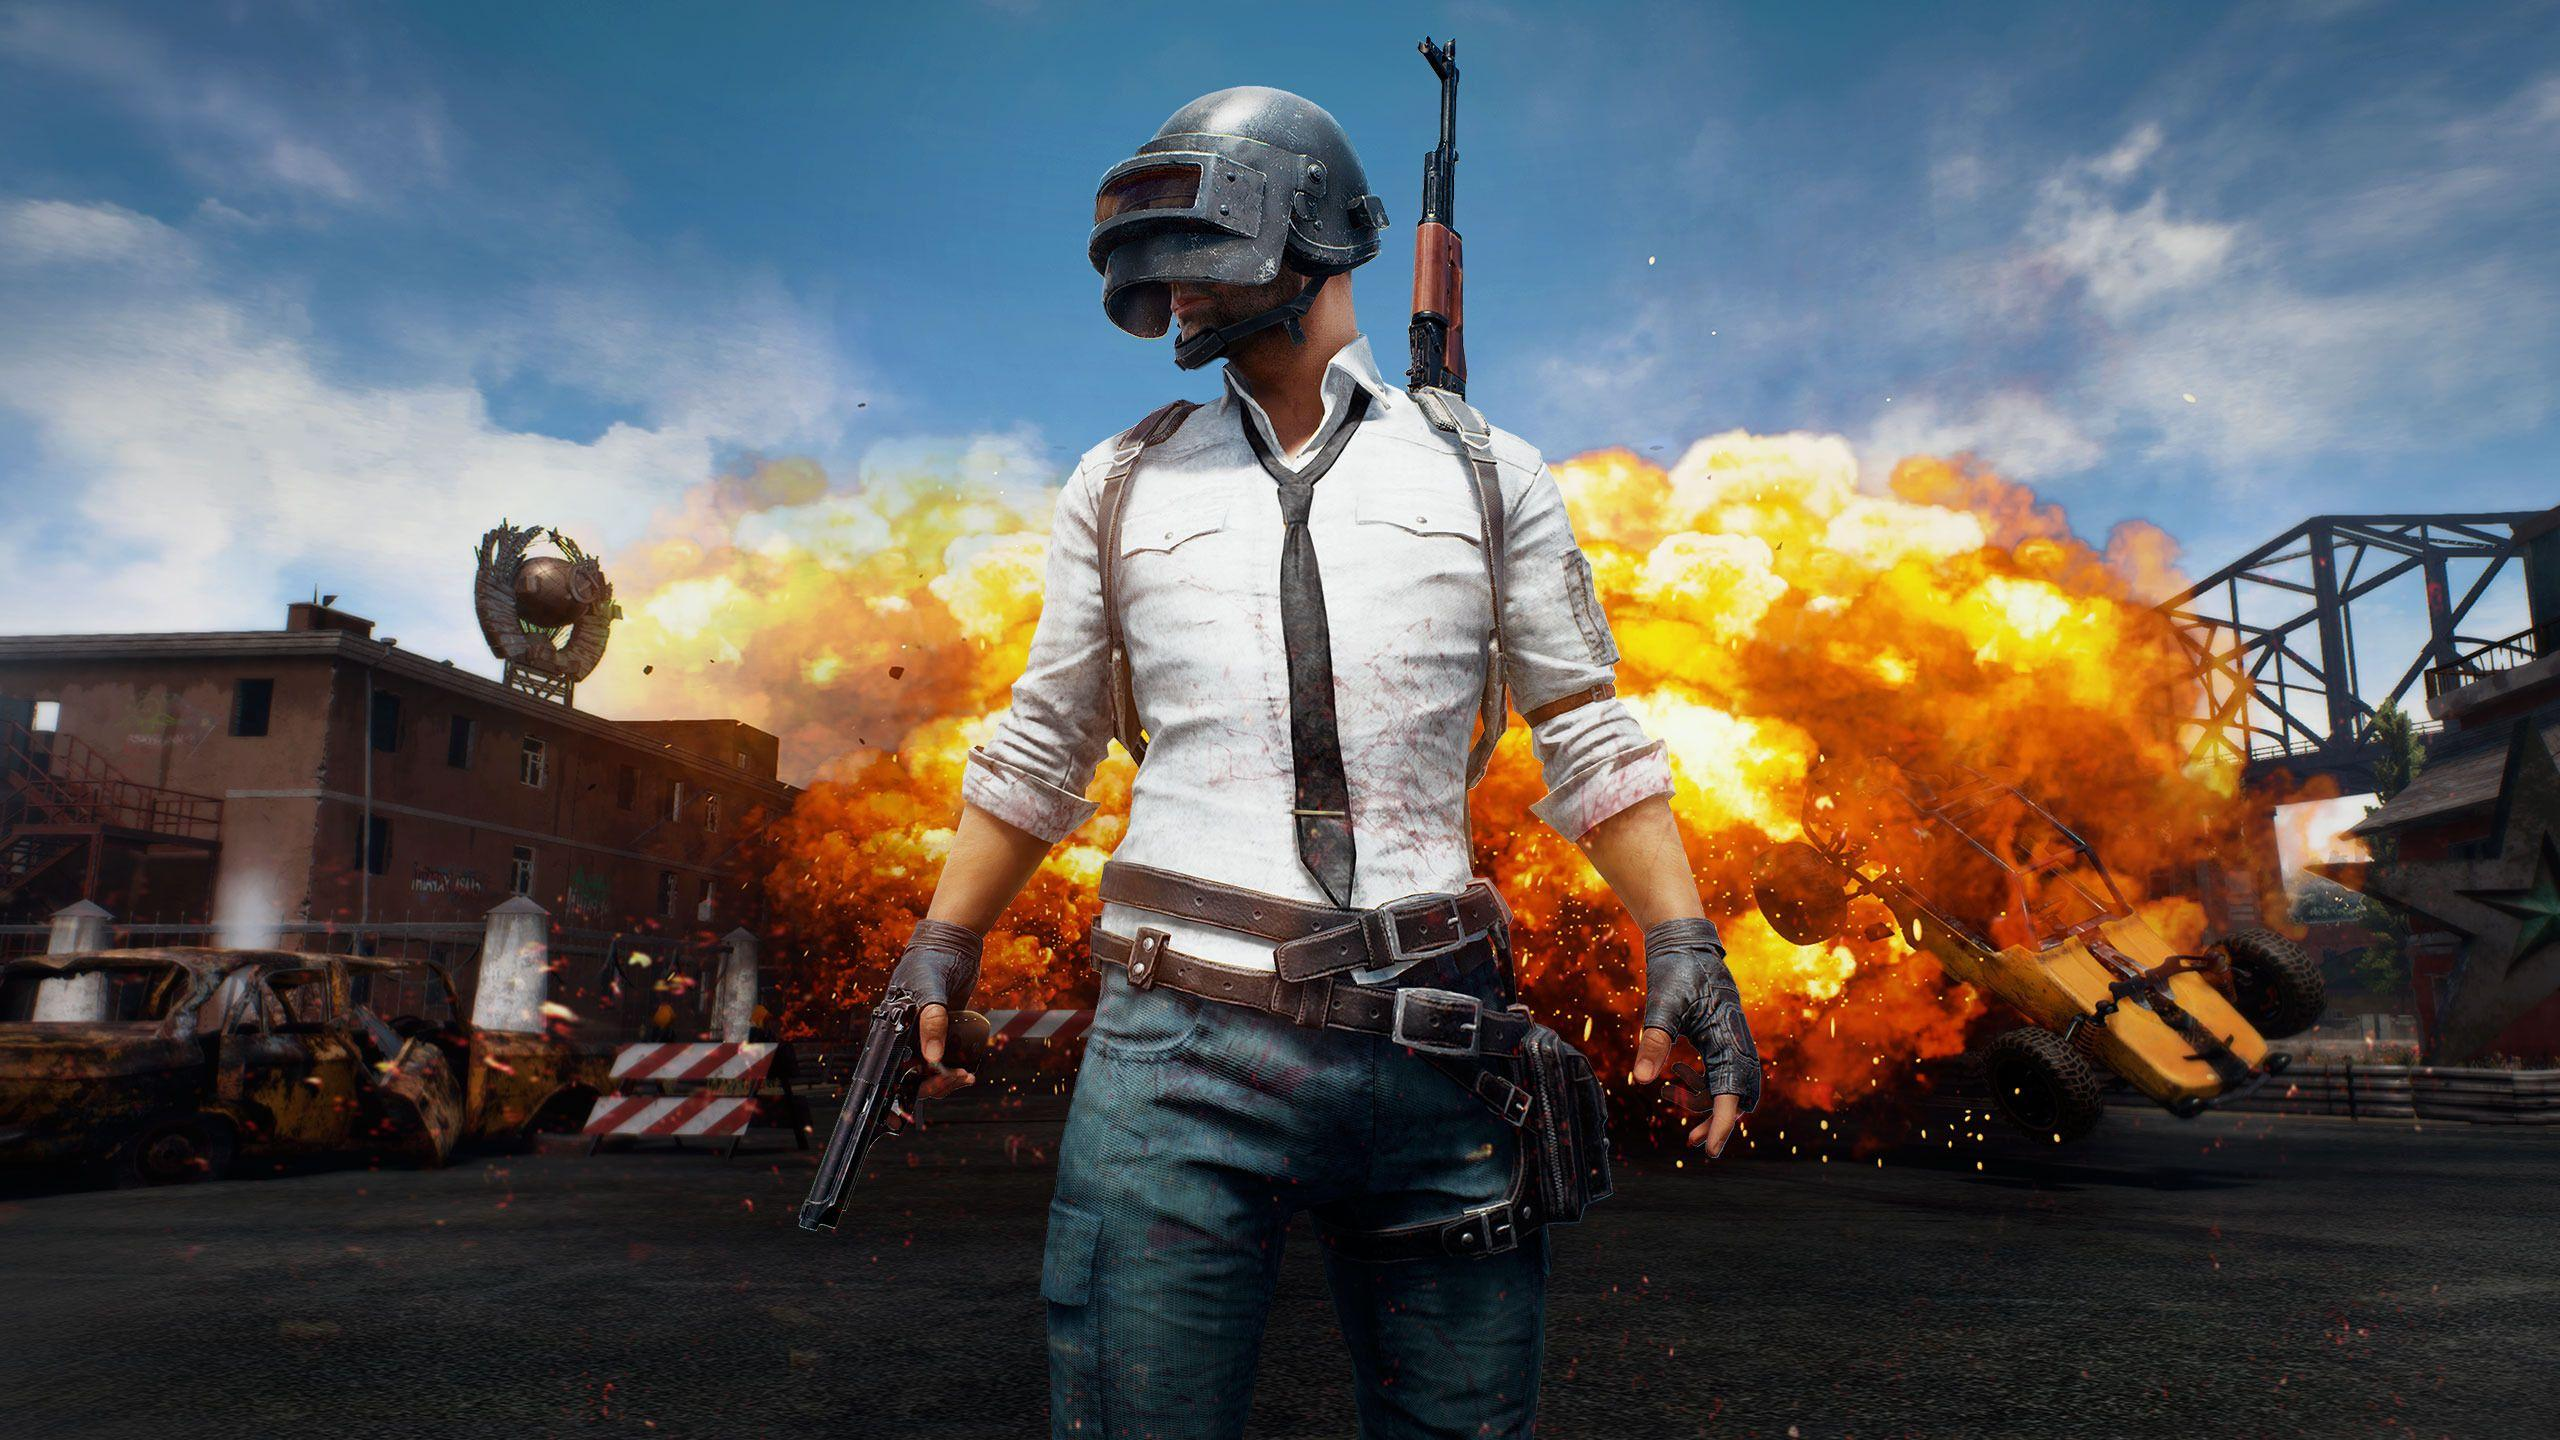 Gambar Pubg Hd Wallpaper: PUBG 4K Wallpapers